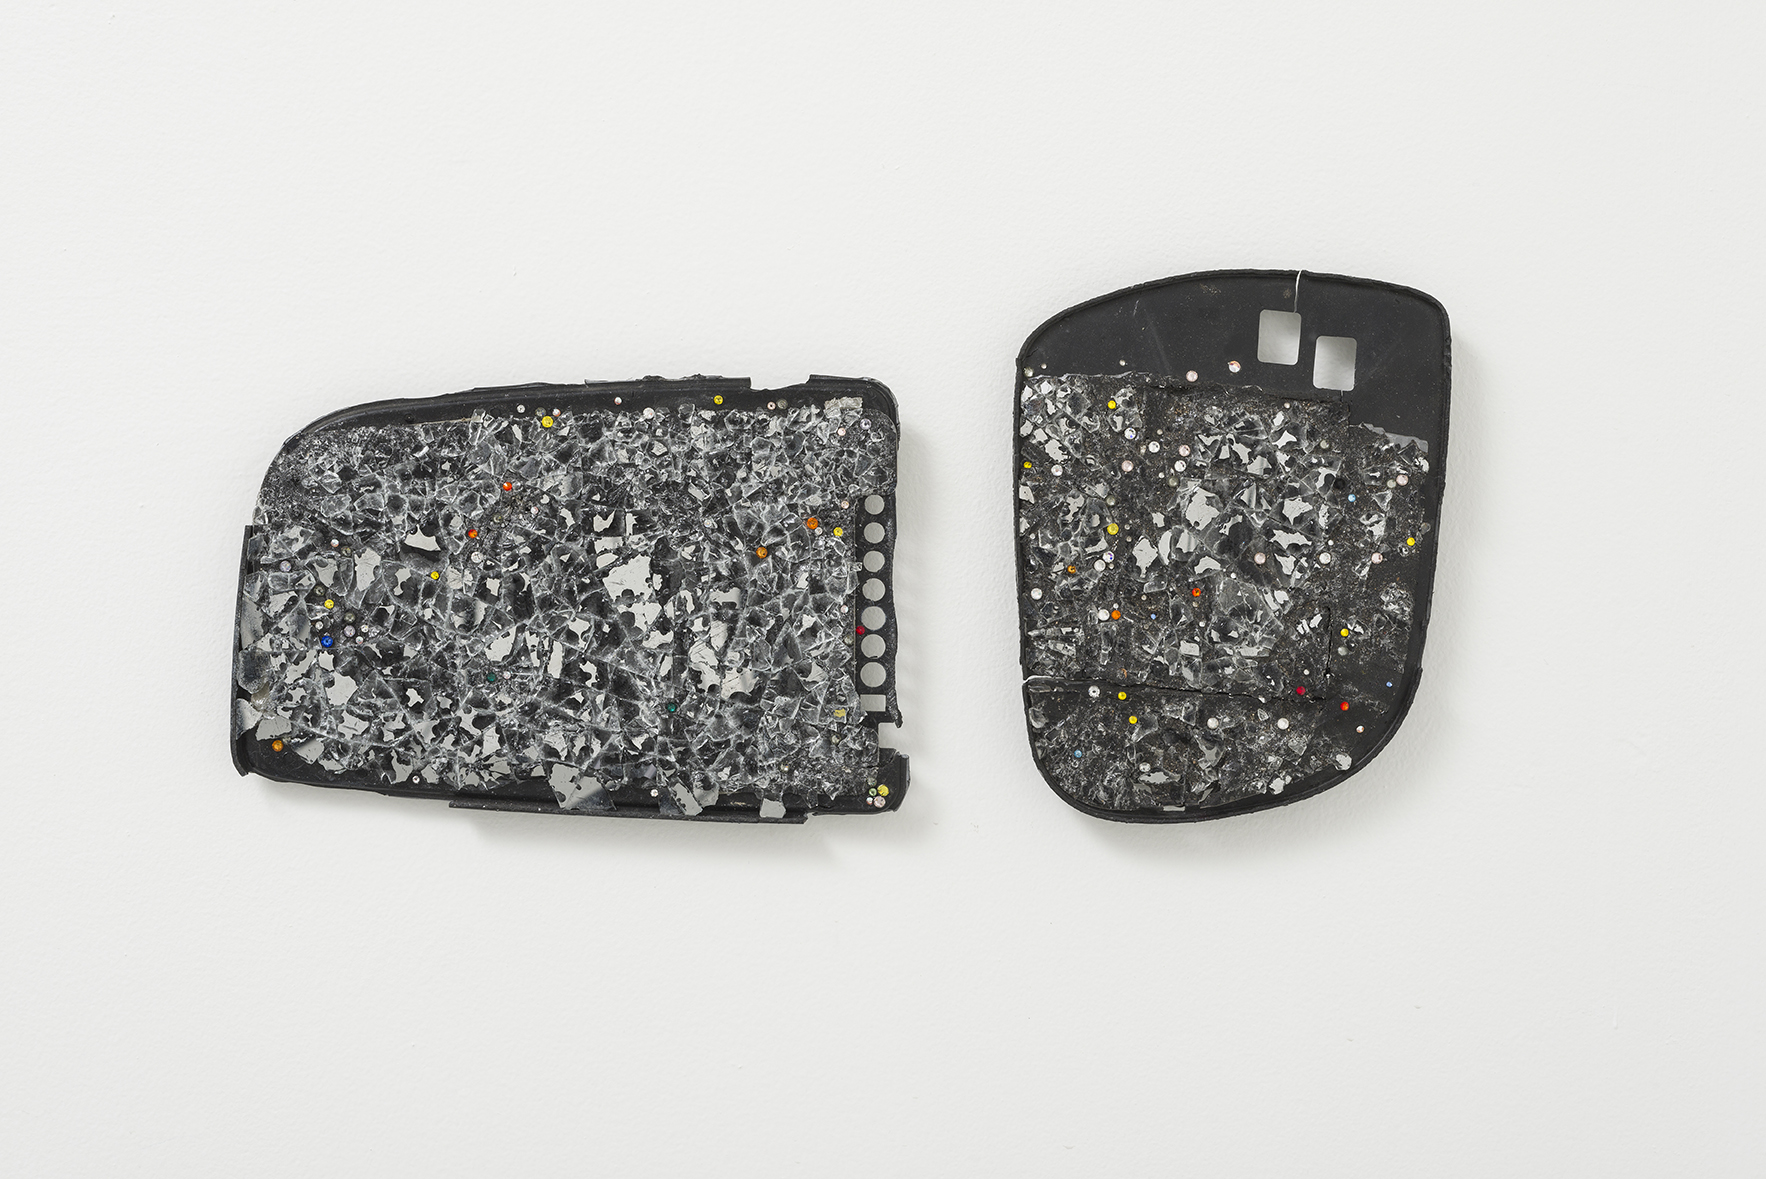 - Butt Model 119, 2015, rearview mirrors, crystals. 2 parts, 8 1/2 x 16 1/2 overall